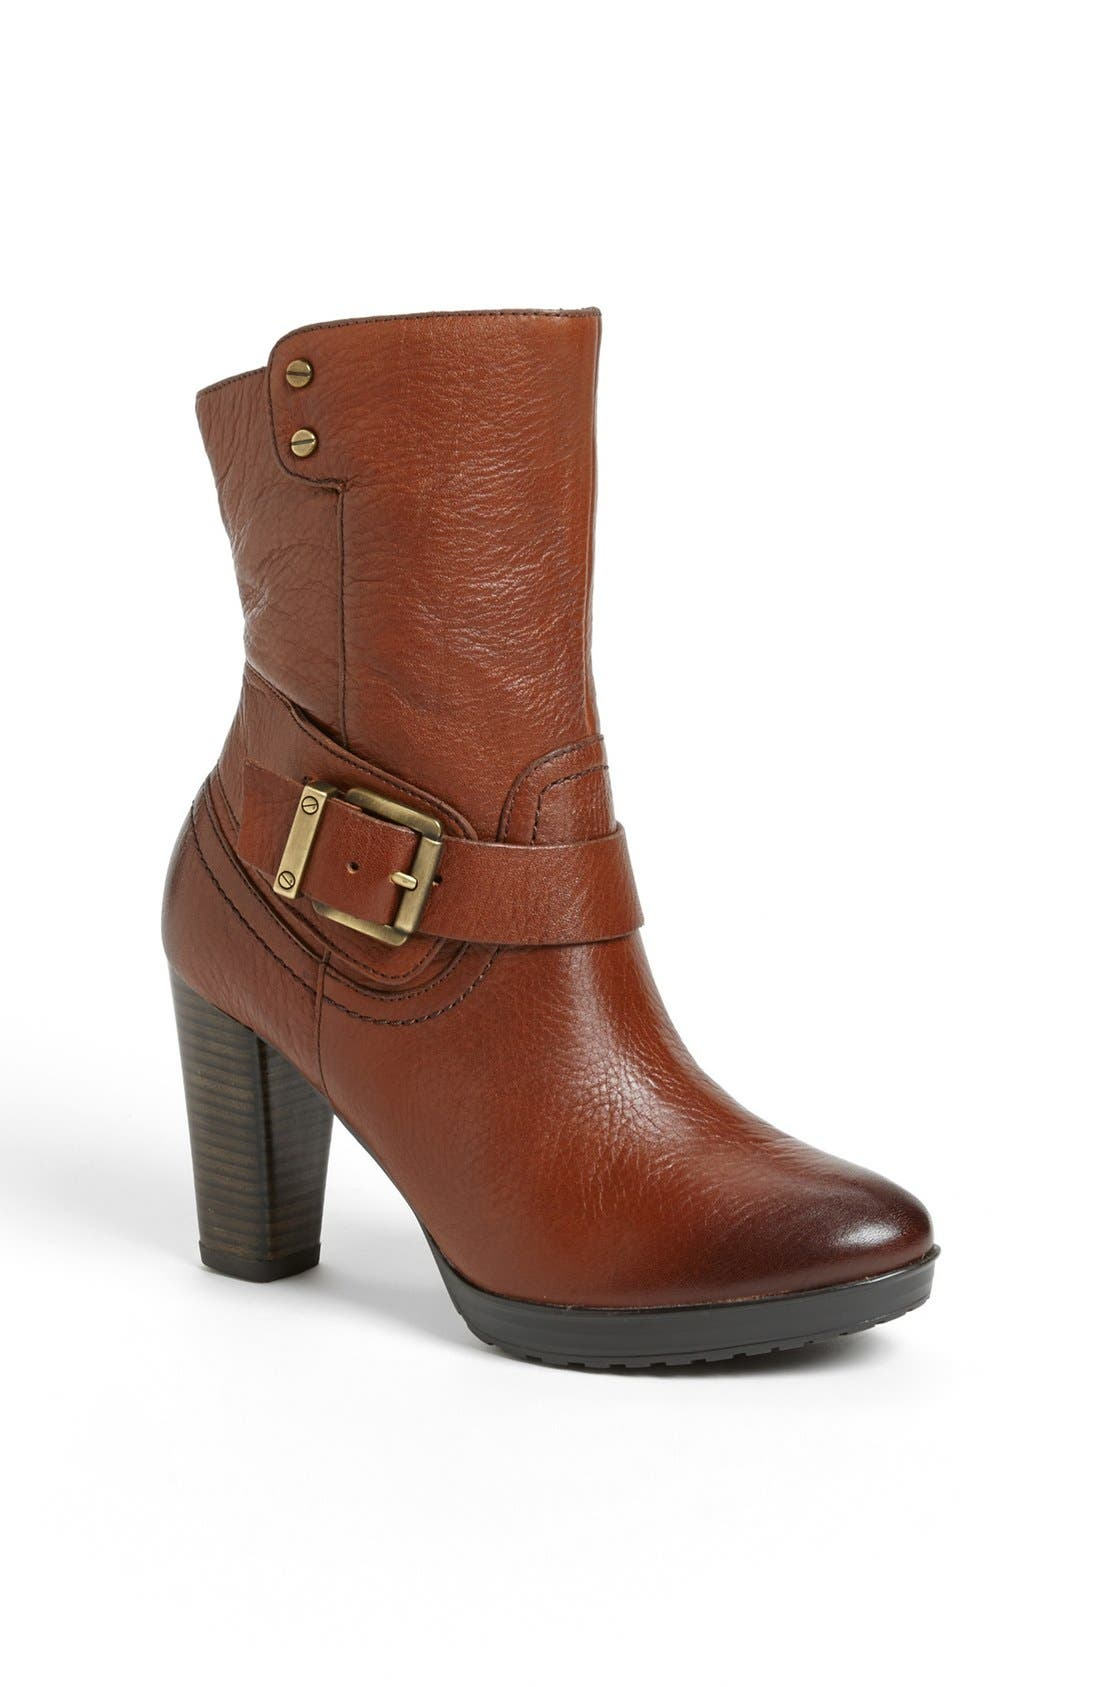 Alternate Image 1 Selected - Clarks 'Lida' Sayer Bootie